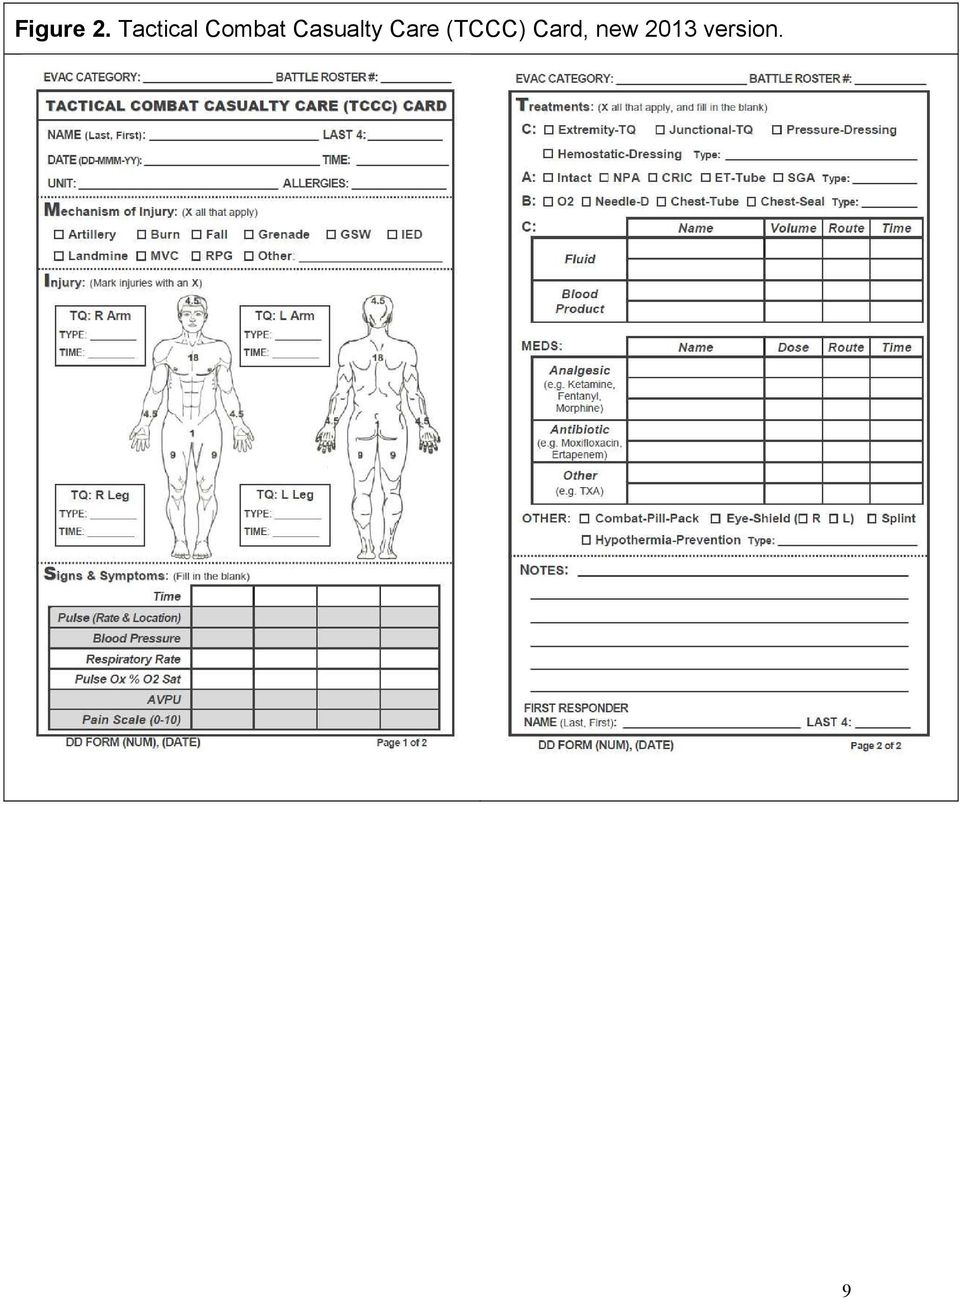 The Tactical Combat Casualty Care Casualty Card  TCCC Guidelines